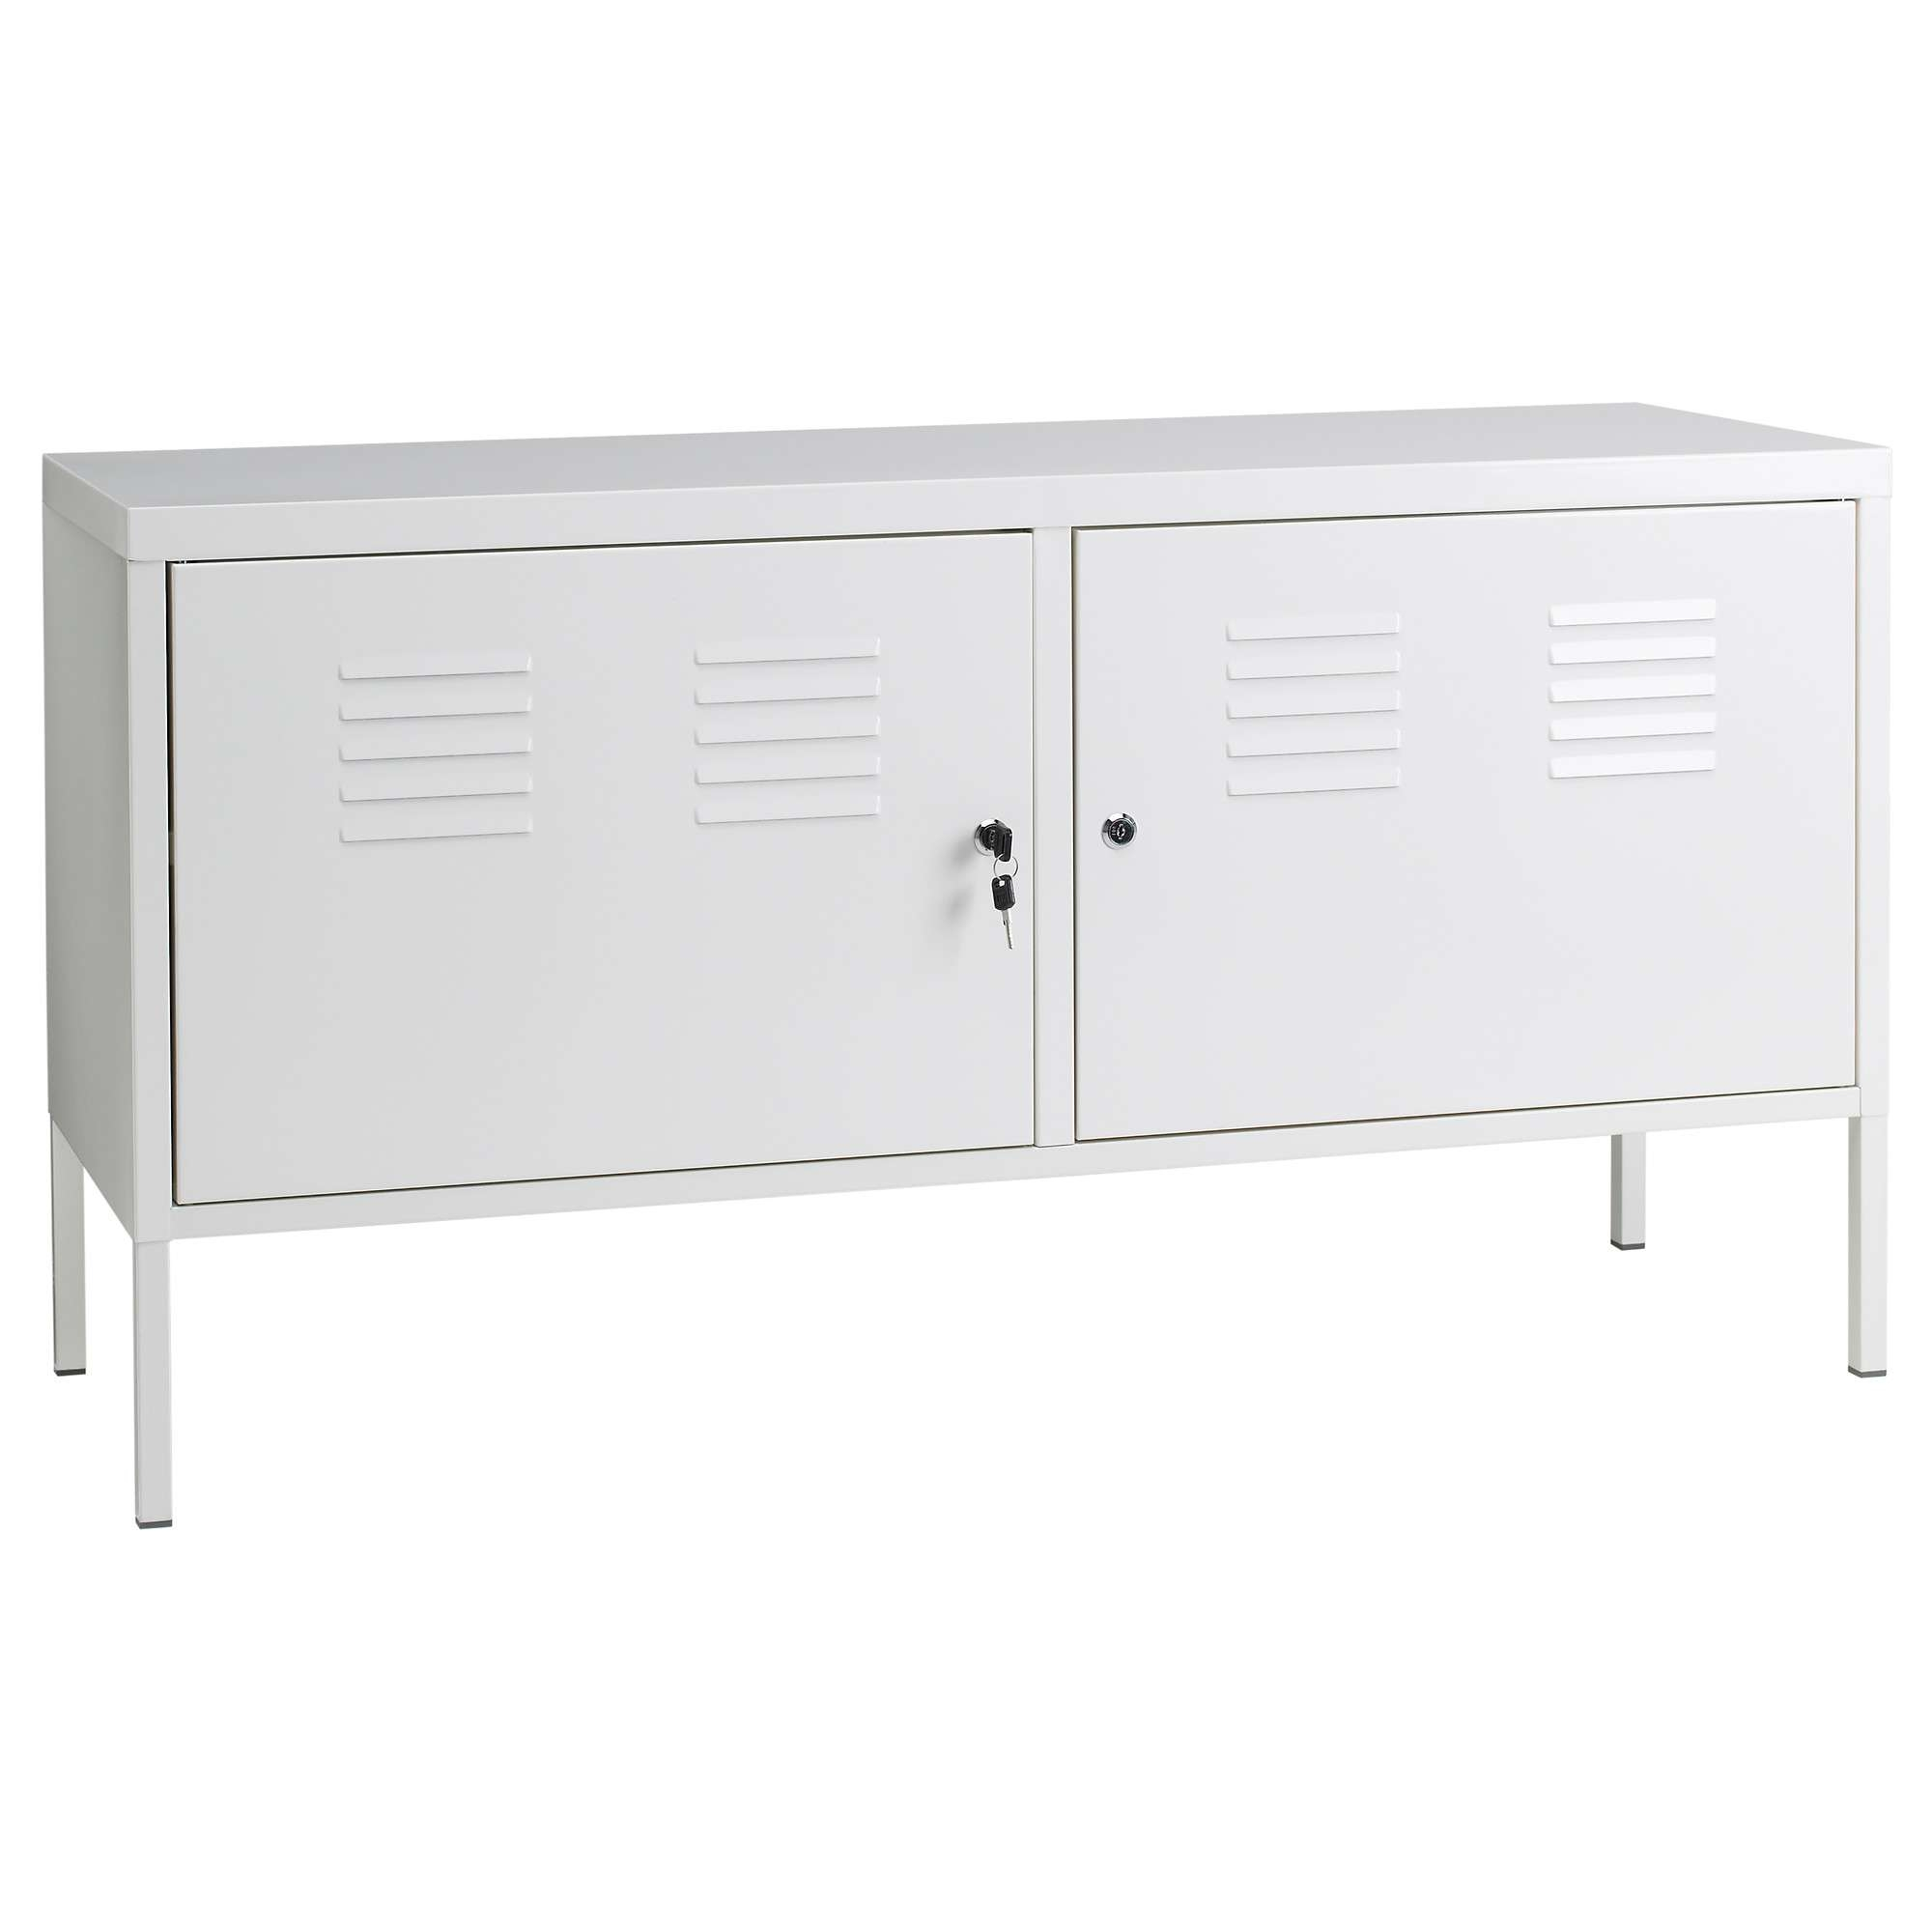 Ikea Ps Cabinet – White – Ikea Throughout White Gloss Ikea Sideboards (View 2 of 20)